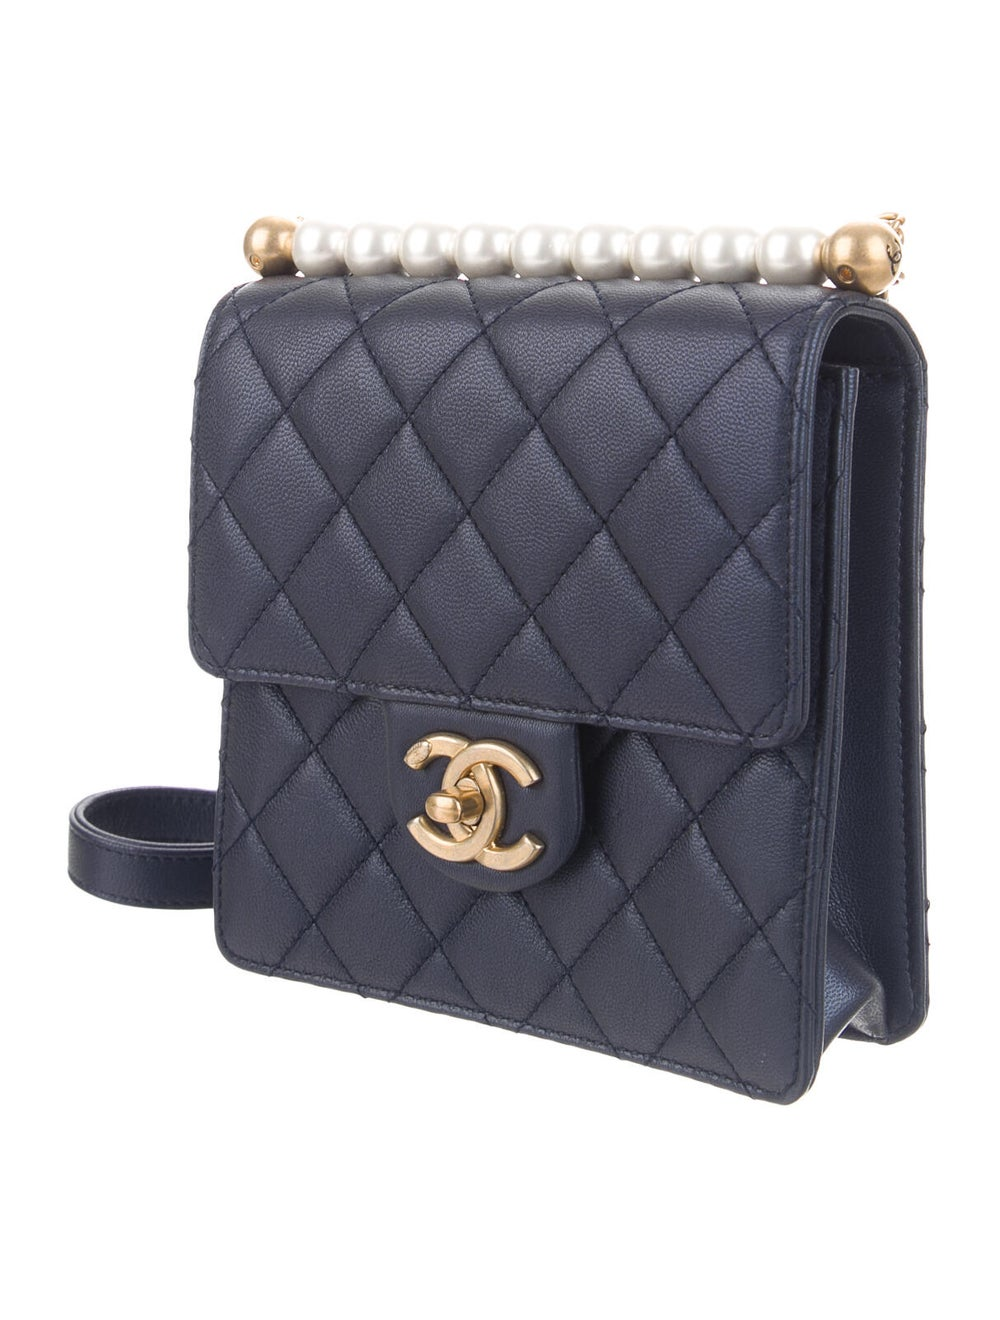 Chanel 2019 Small Chic Pearls Flap Bag Blue - image 3